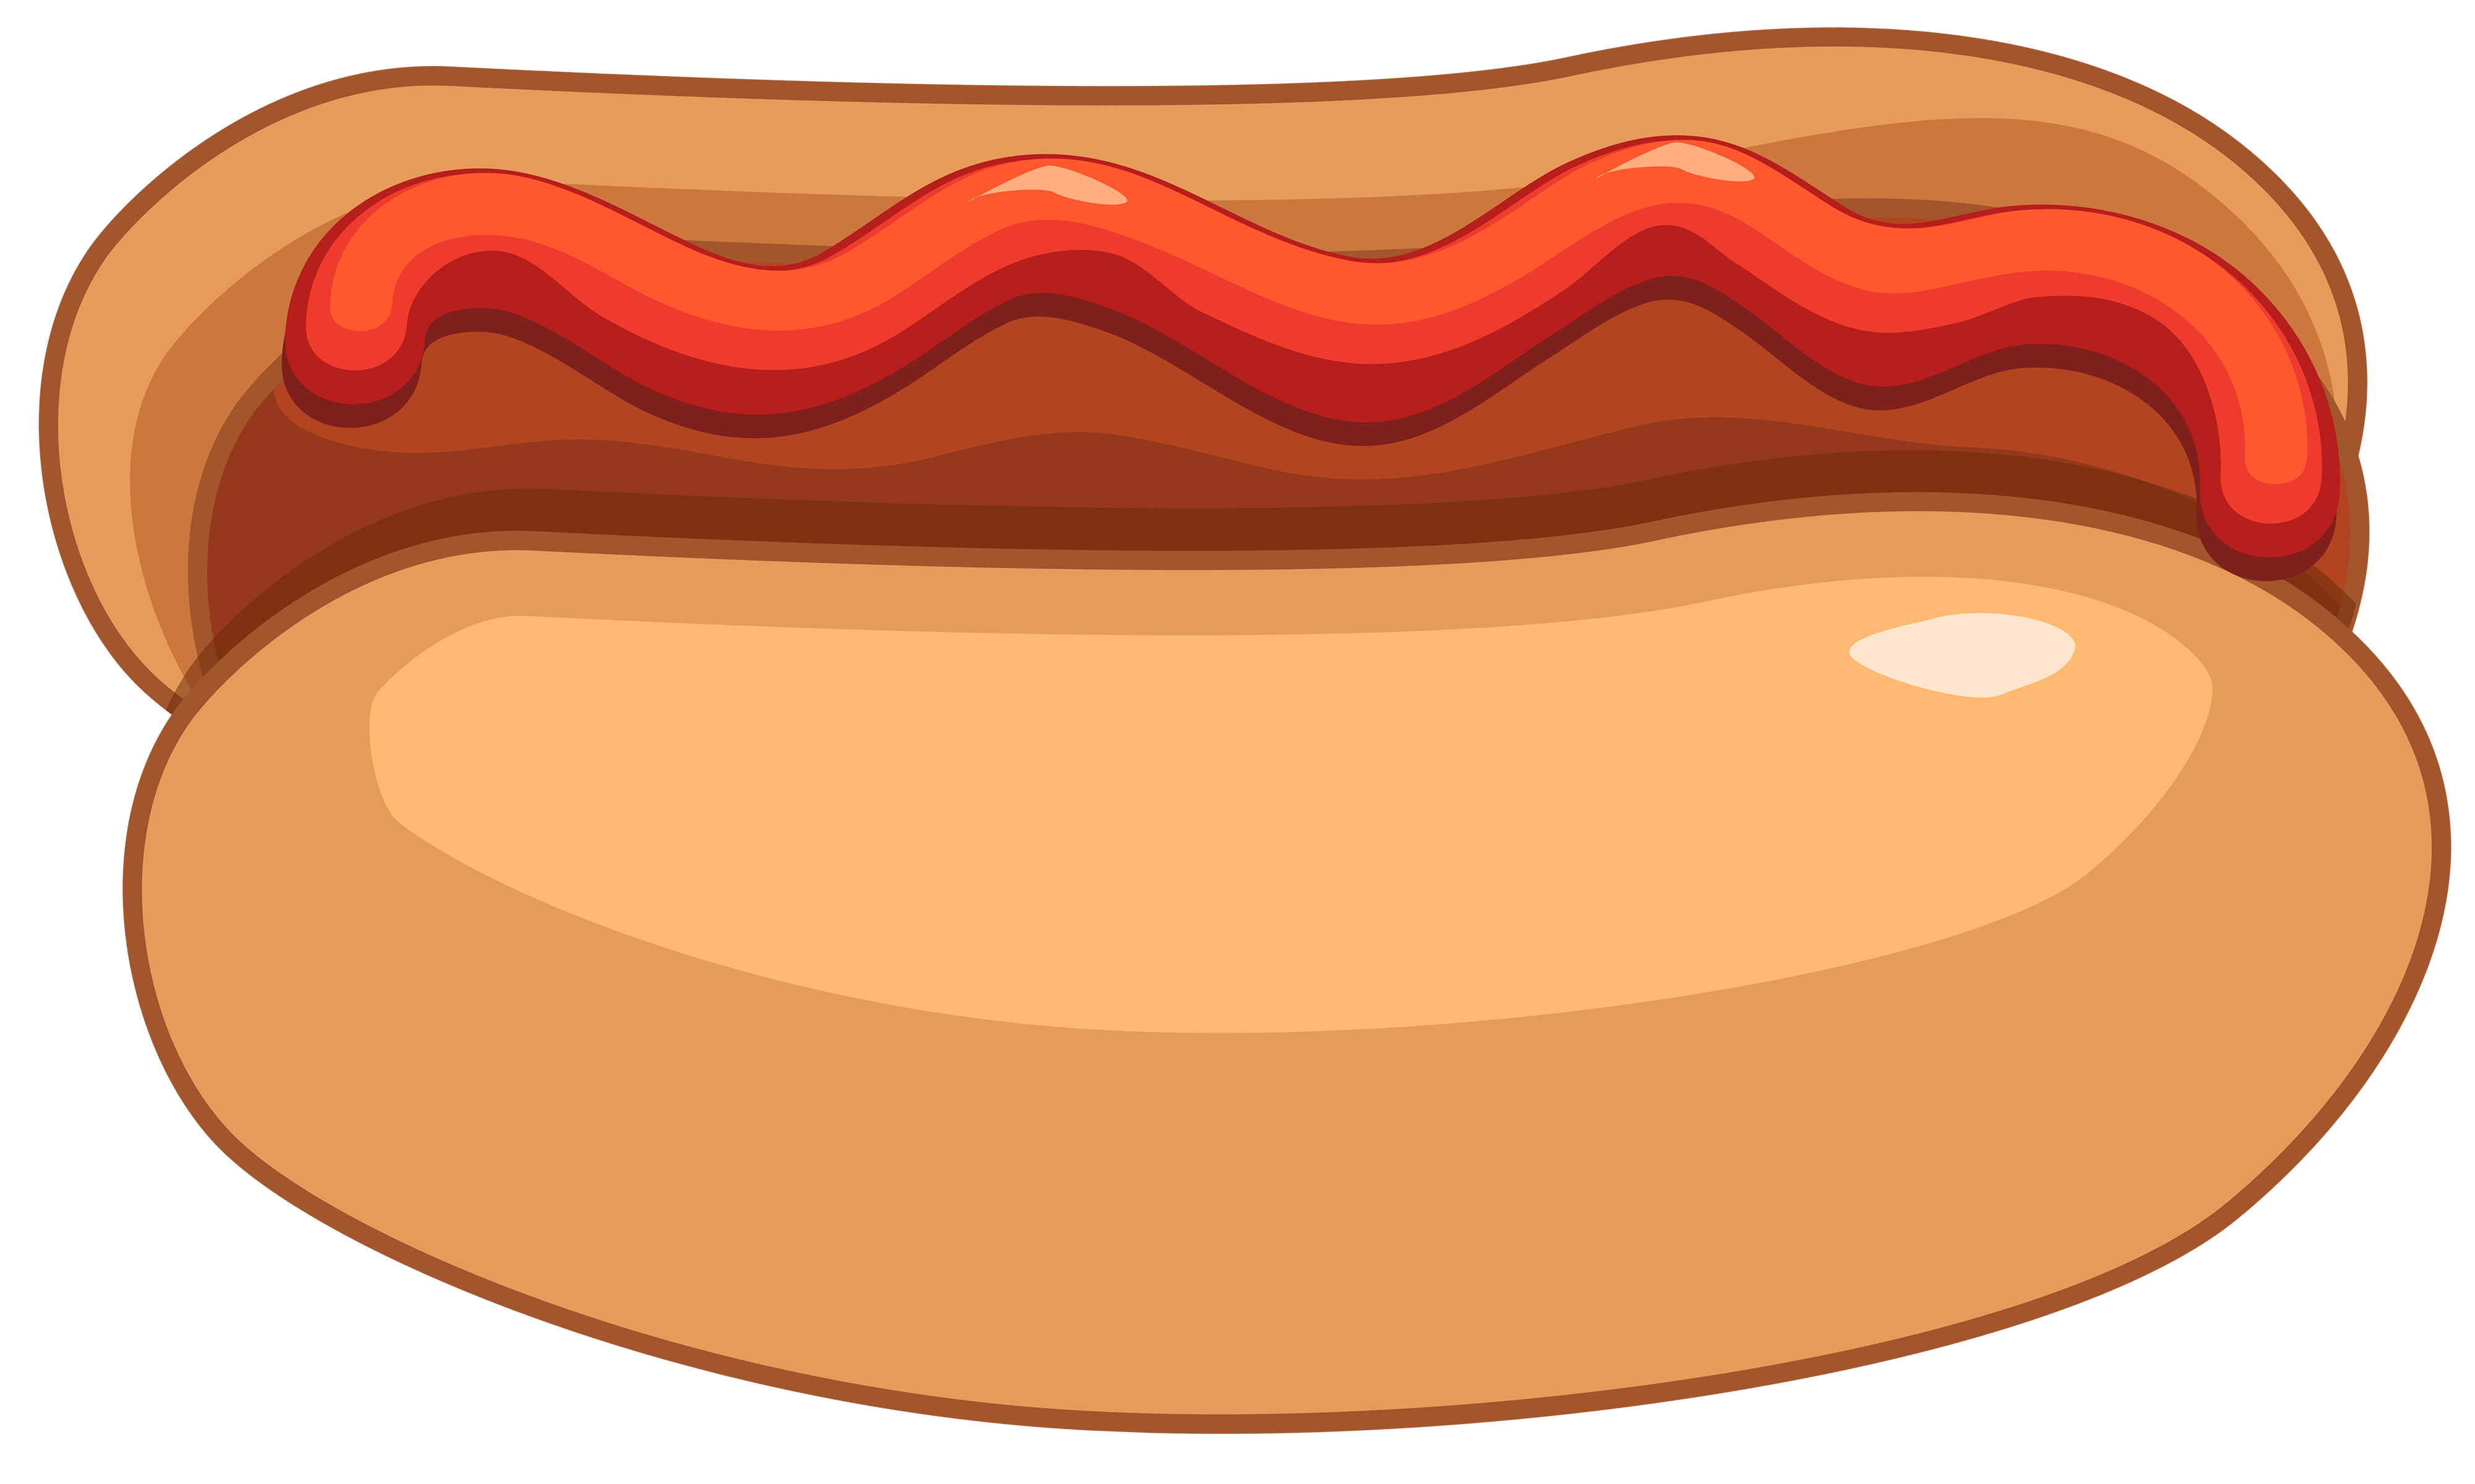 Hot dog and ketchup clipart .